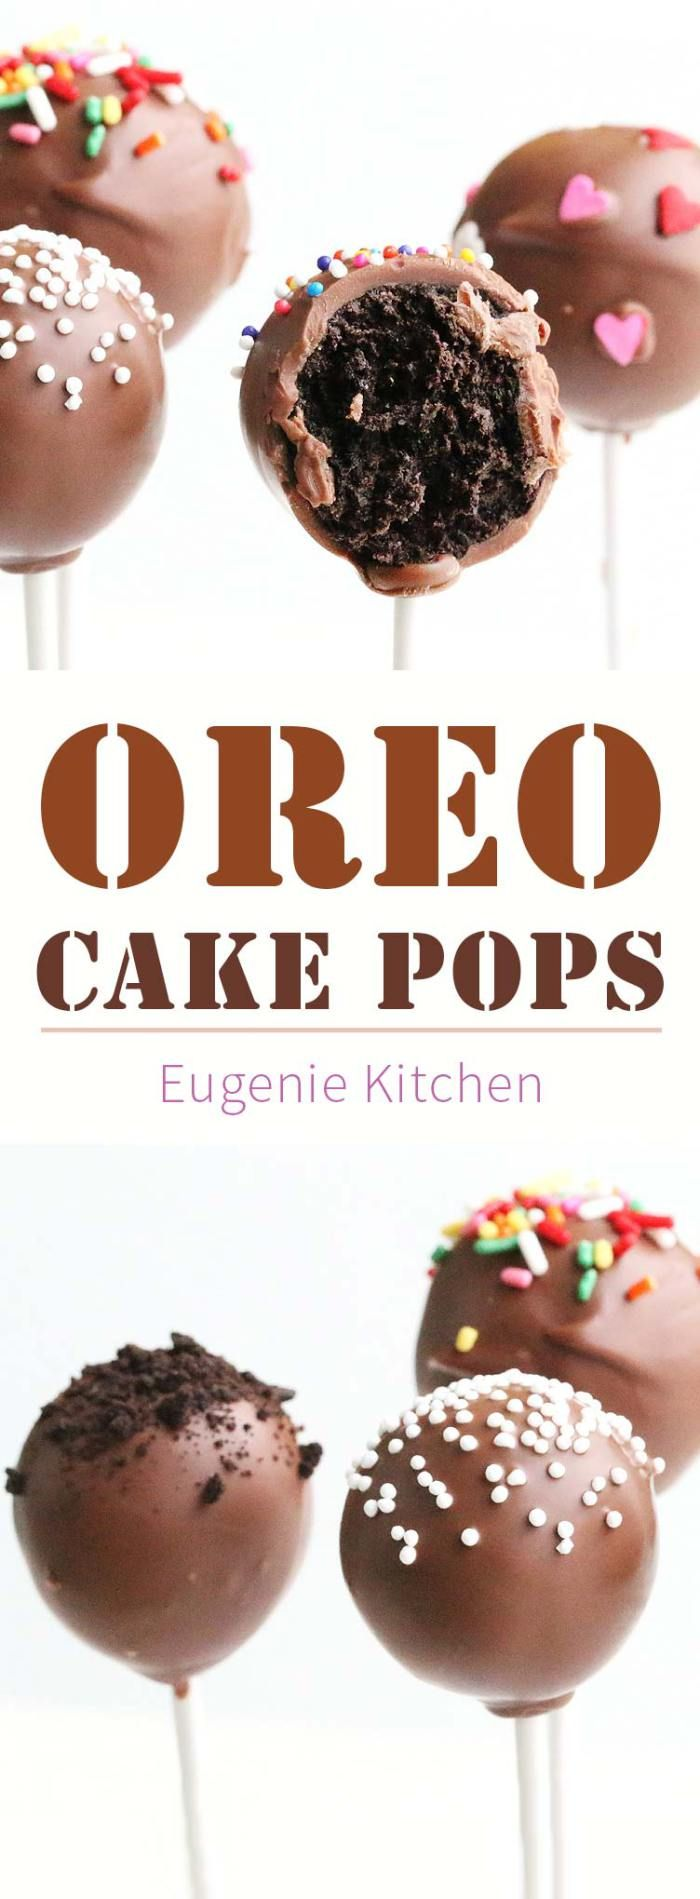 Cake pops can't be easier than this! Cream cheese, Oreo cookies and melted chocolate will make a perfect Valentine's Day gift.